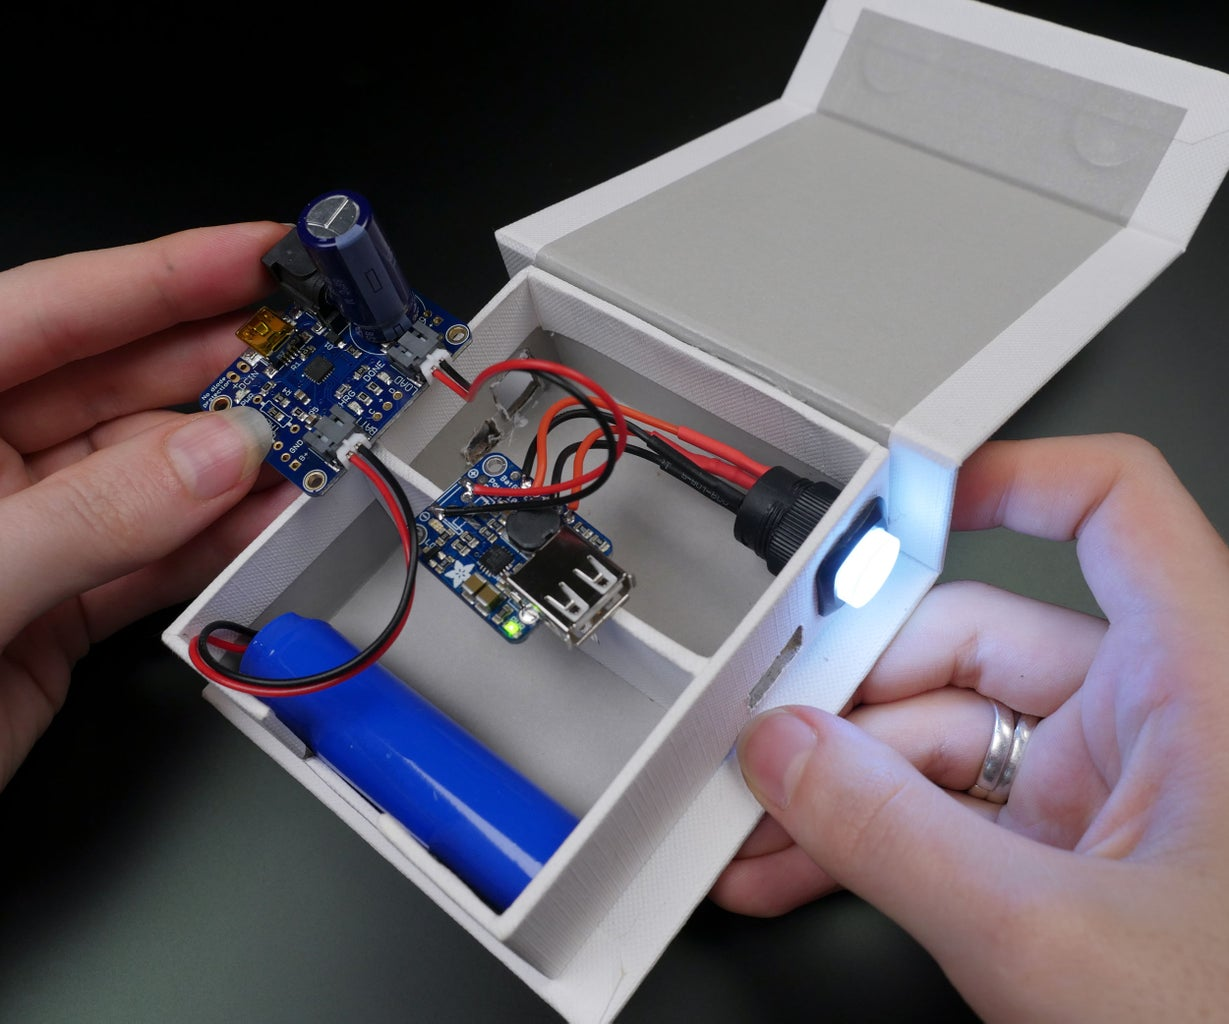 Secure Components Within Enclosure